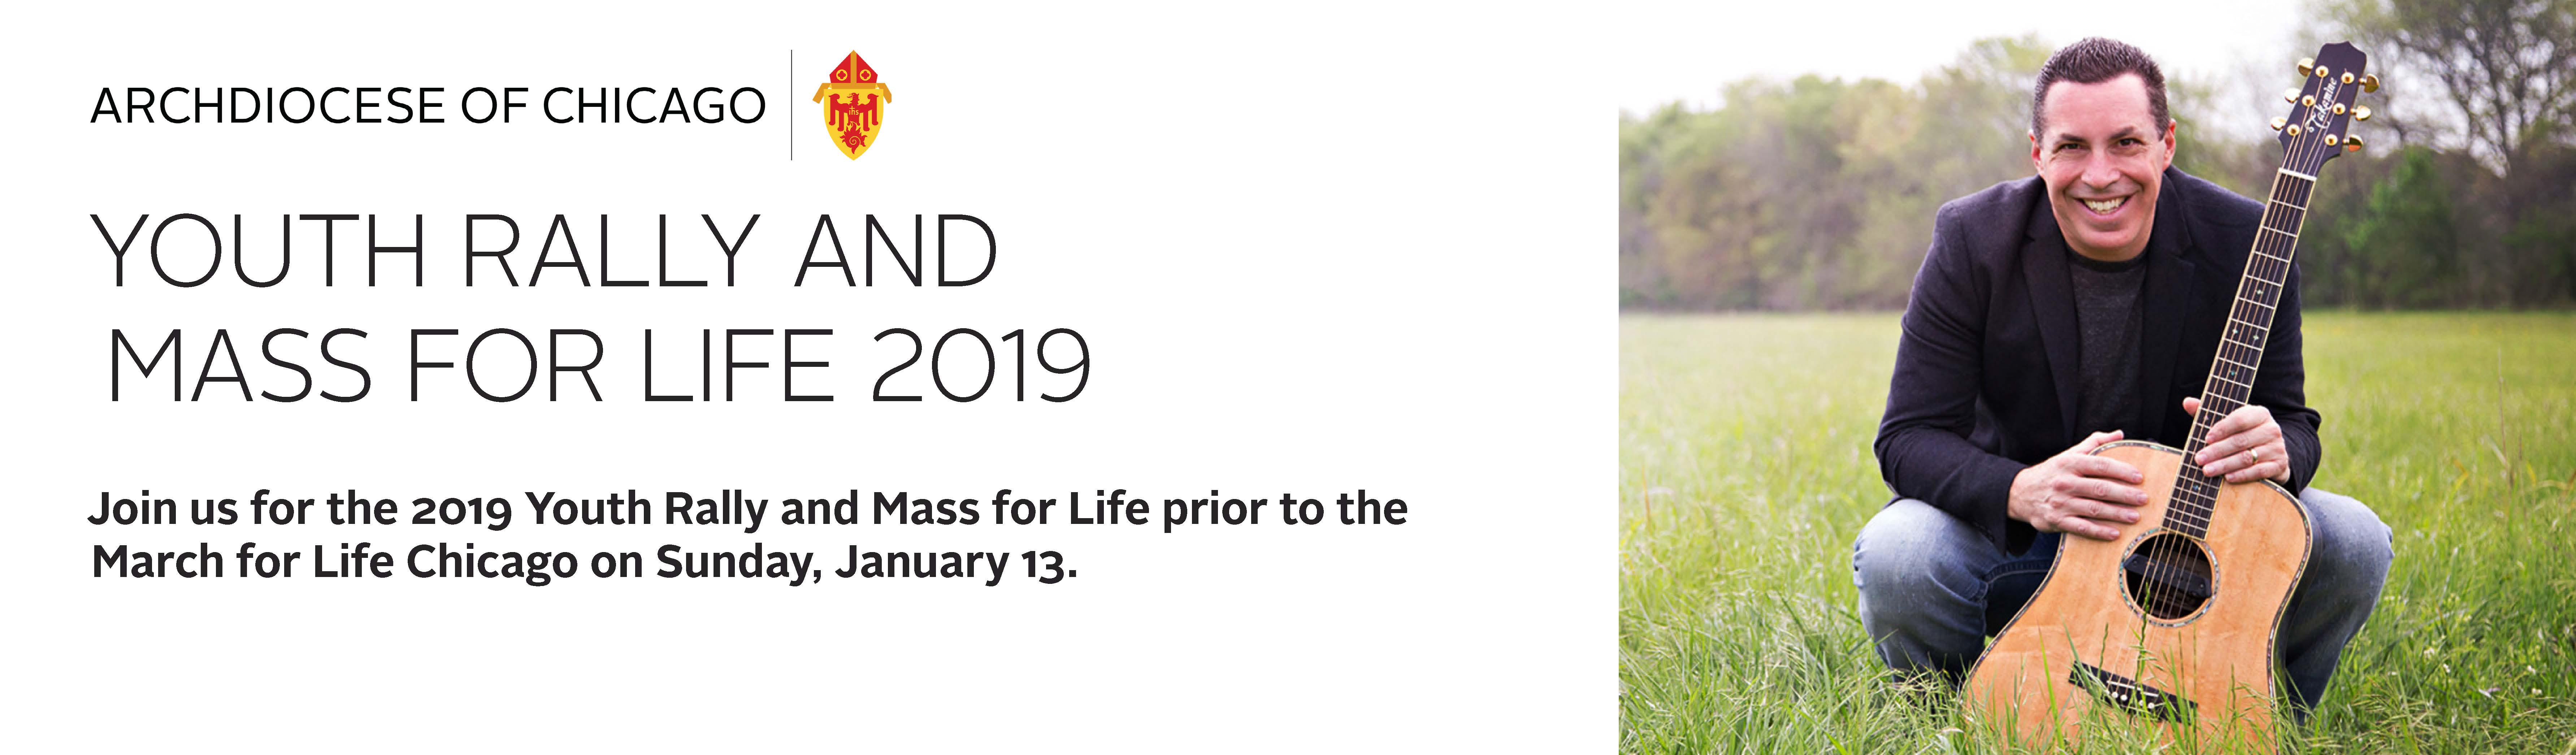 Youth Rally and Mass for Life 2019